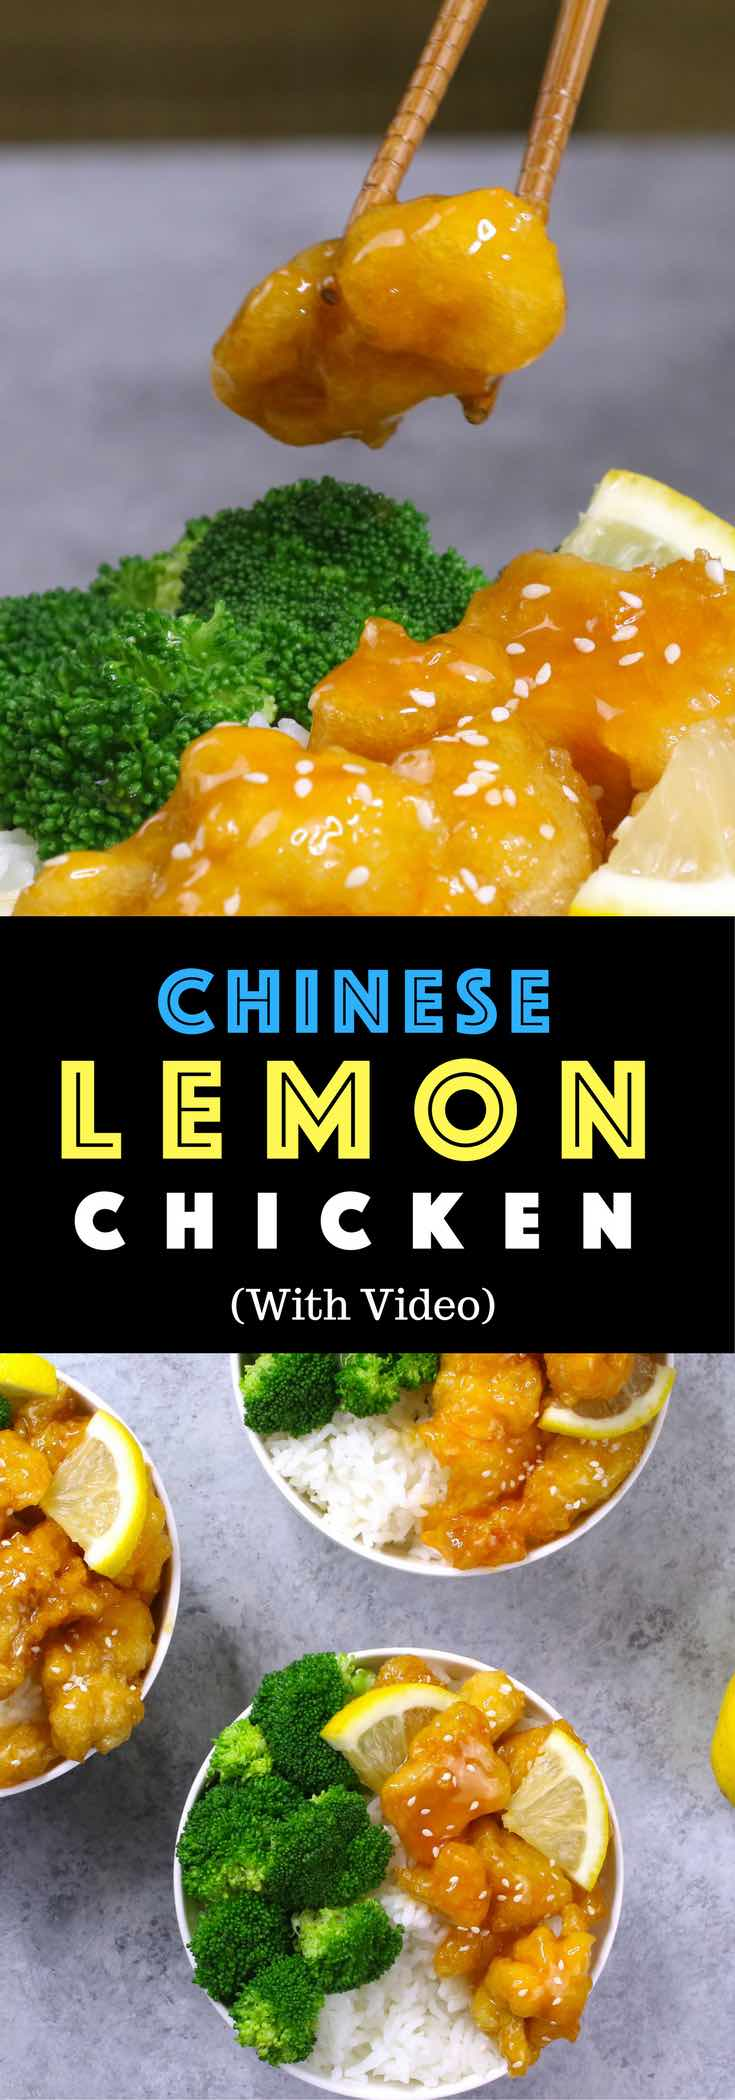 Easy, crispy and most unbelievably delicious Lemon Chicken with Rice Bowls. So much better than take outs! All you need is only a few ingredients: chicken breast, lemon, salt & pepper, egg, oil, sugar, and cornstarch. One of the best Asian dinner ideas! Served with rice and broccoli. Quick and easy dinner recipe. Video recipe. | Tipbuzz.com